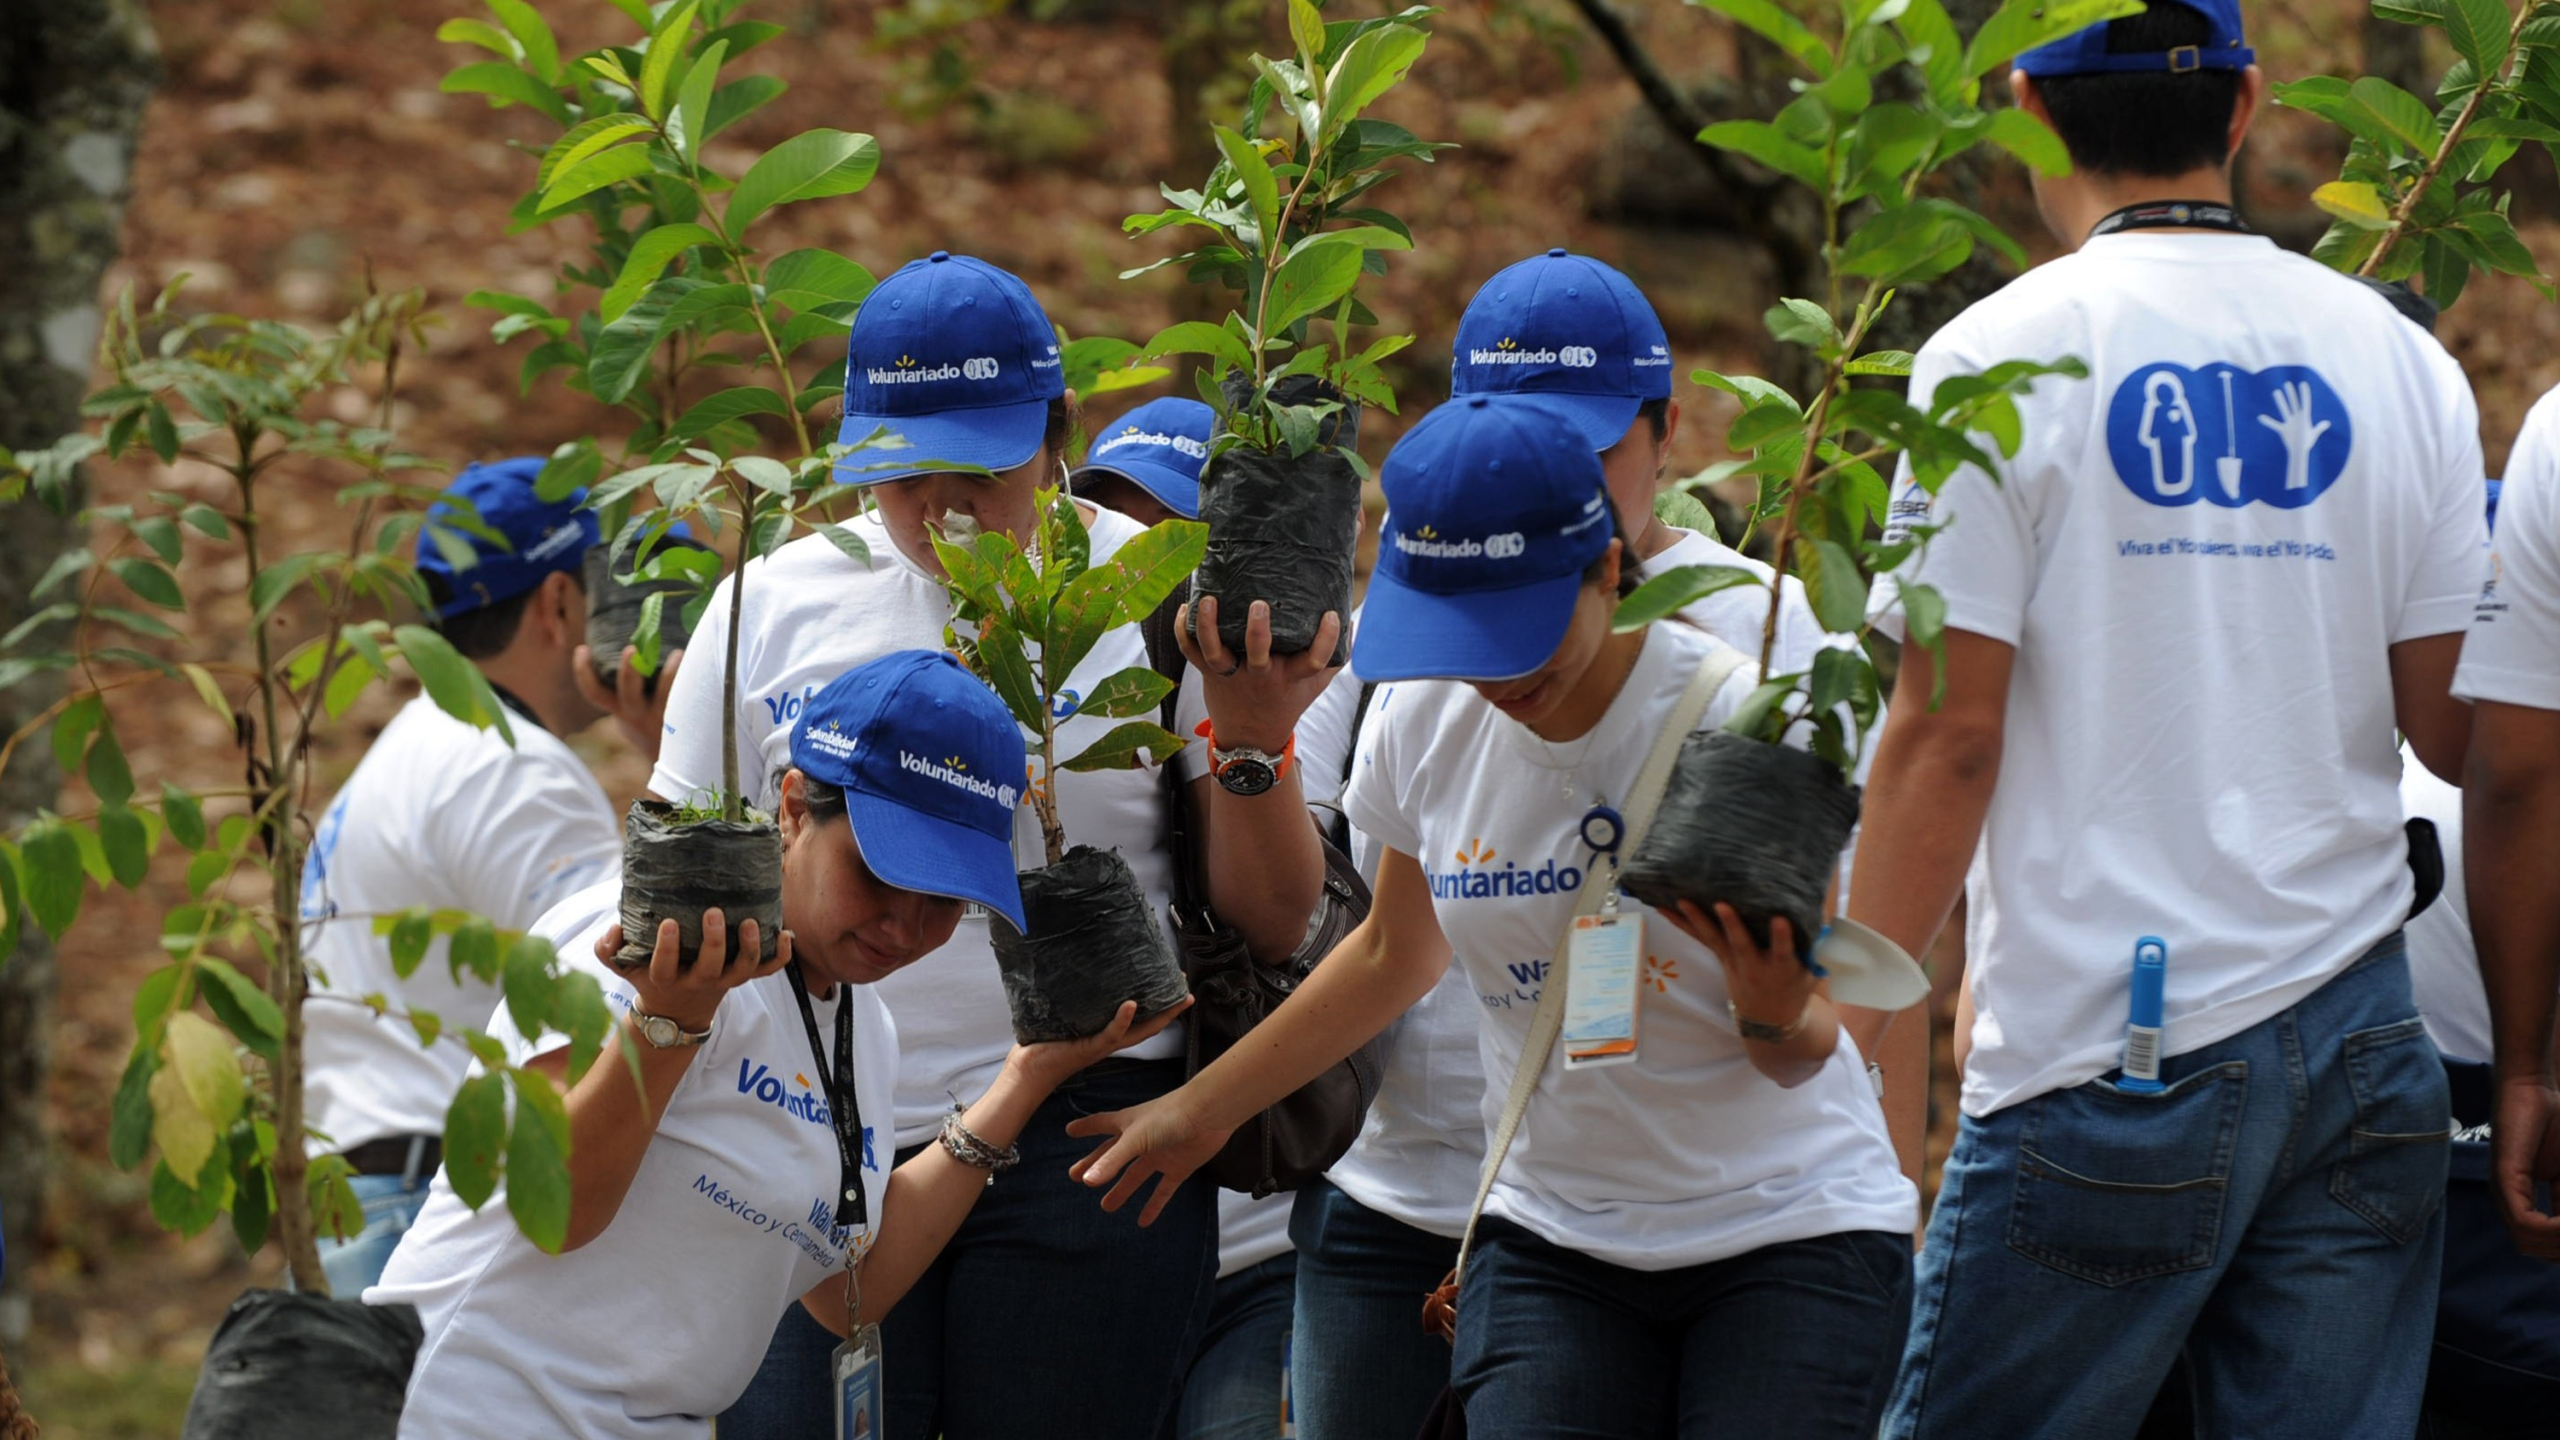 Volunteers participate in the reforestation of the 'Rosy Walter' zoo, on El Picacho hill, north of Tegucigalpa, Honduras, on April 18, 2012. (Credit: ORLANDO SIERRA/AFP/Getty Images)